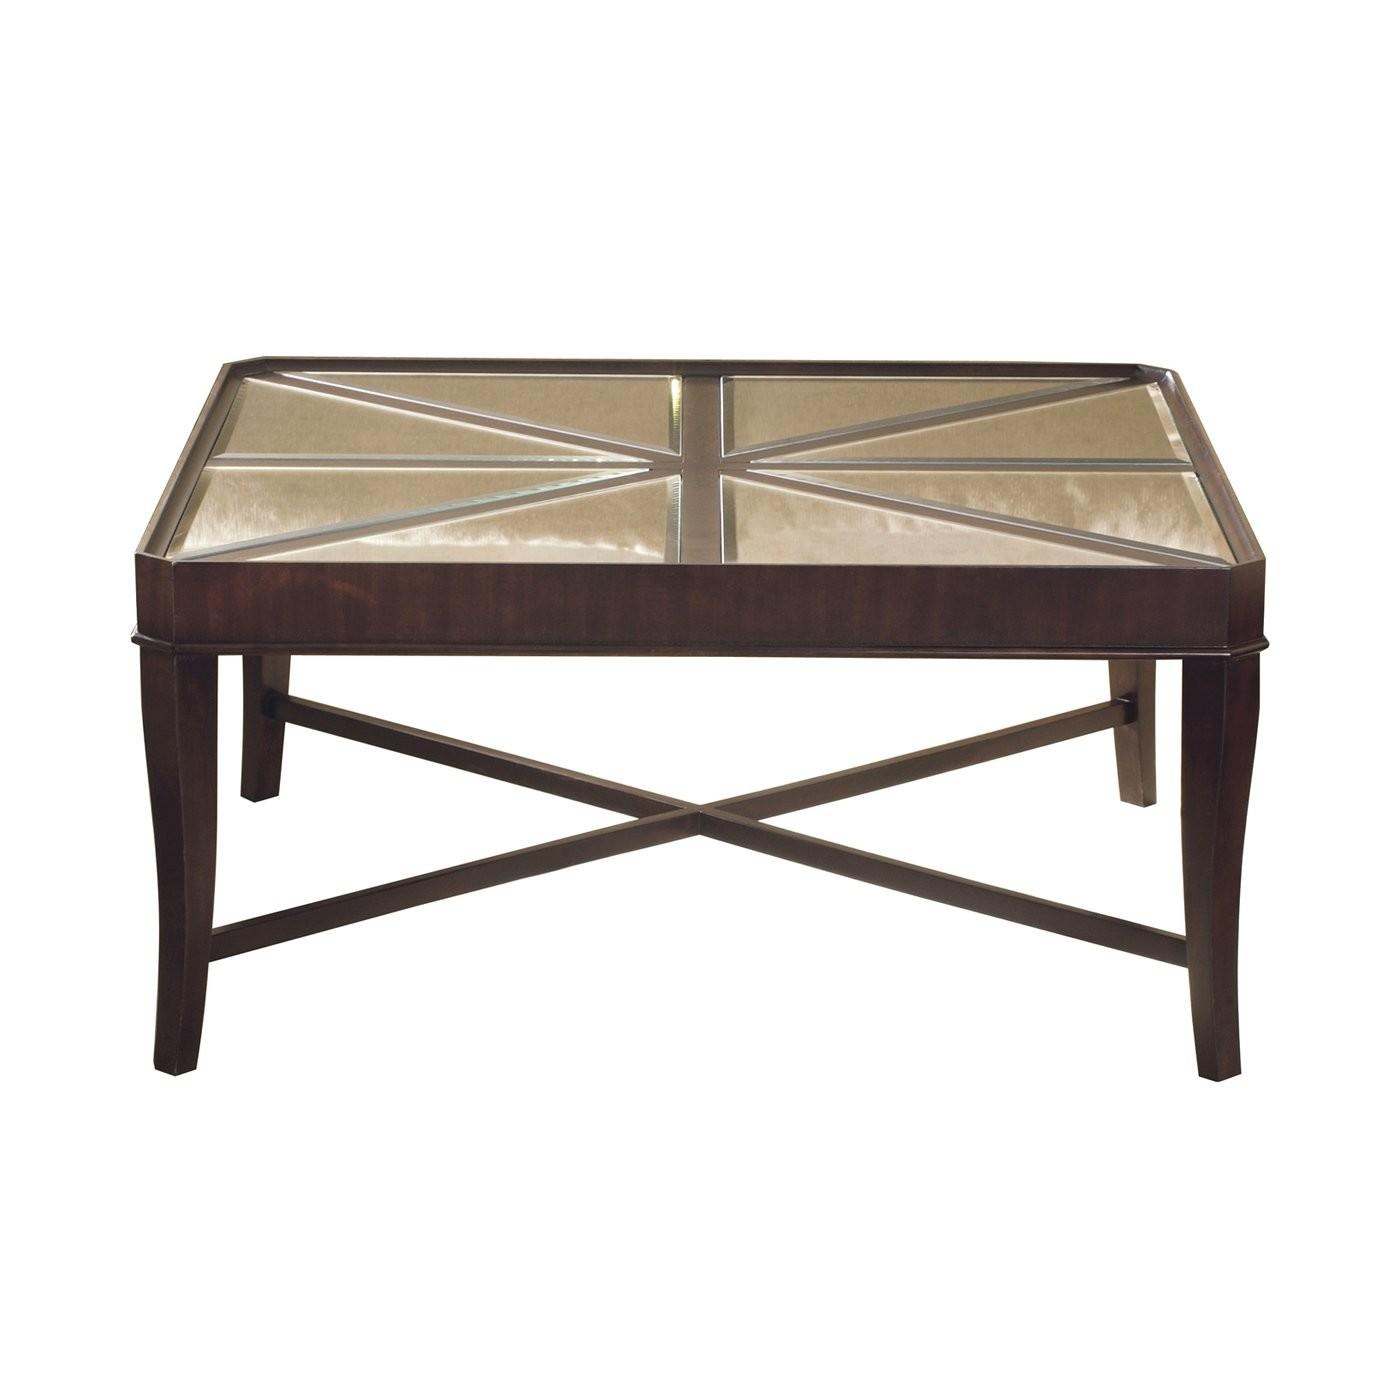 Hekman 401 Metropolis Square Mirrored Coffee Table Atg